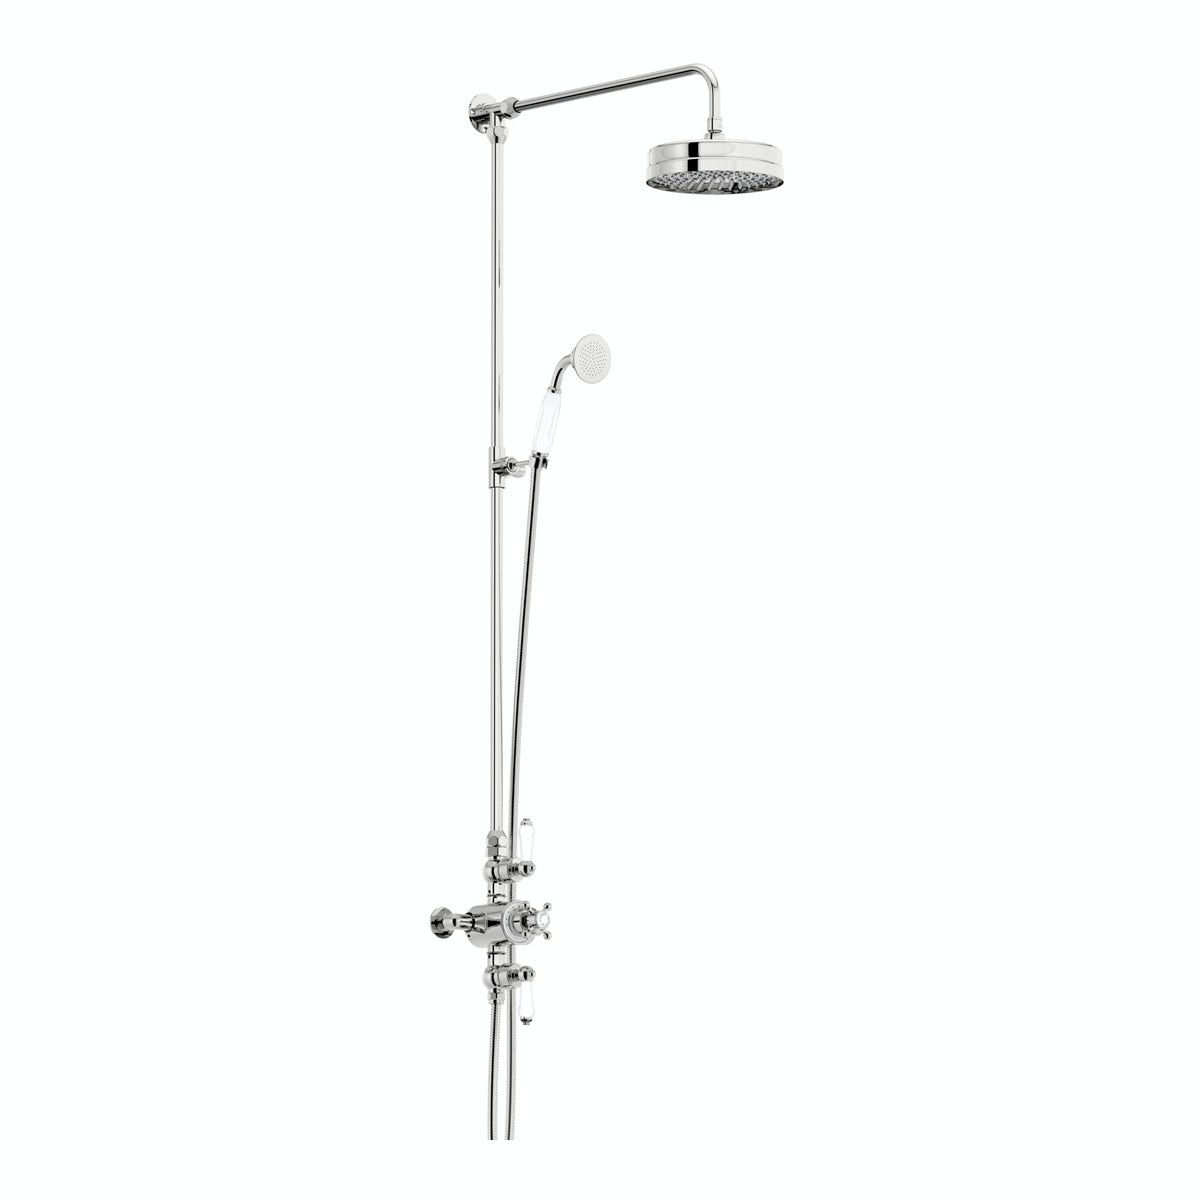 Barrington rain can dual valve riser shower system